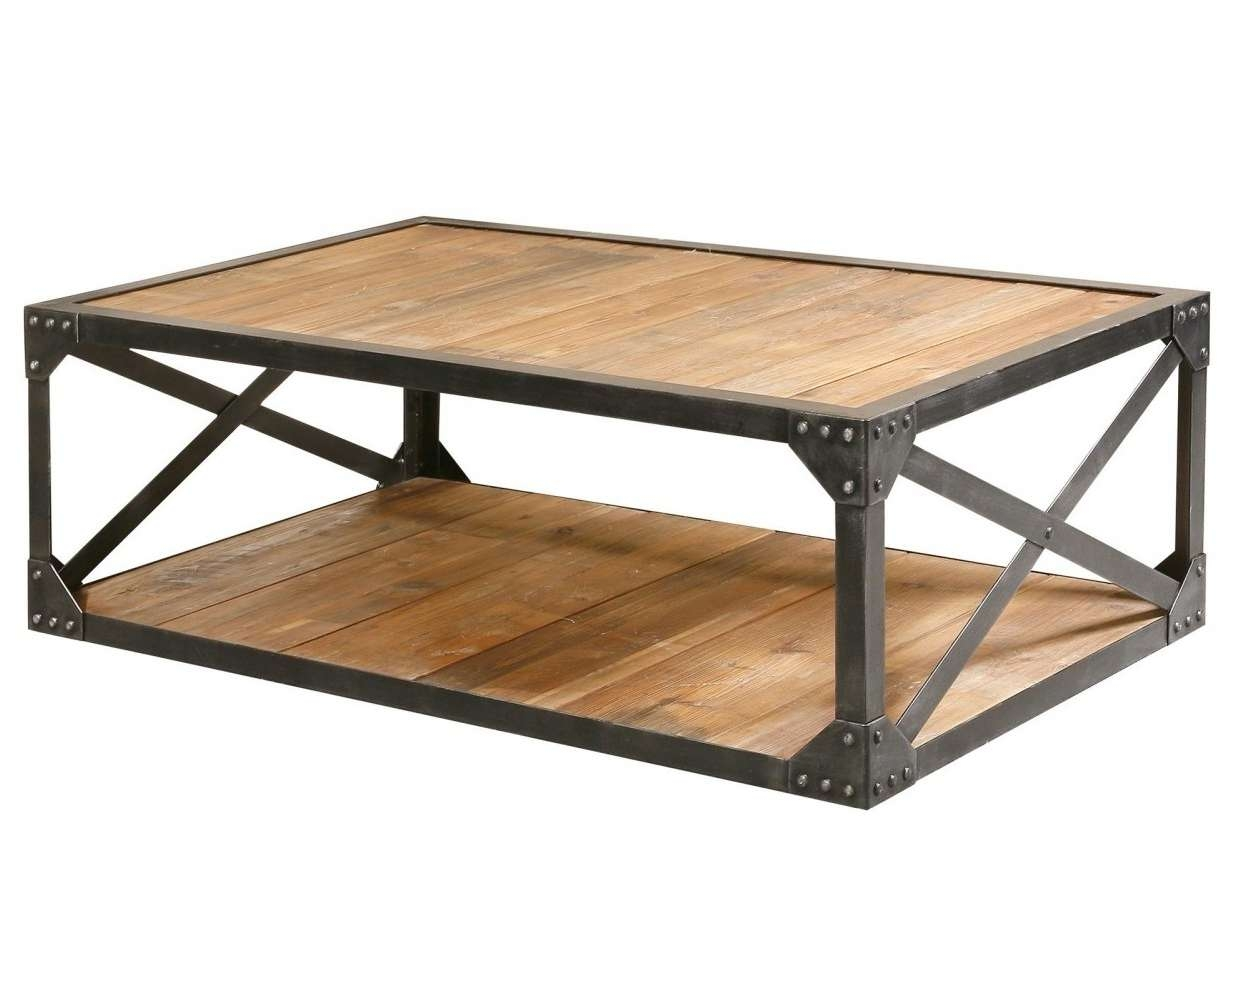 Fashionable Wood And Steel Coffee Table Regarding Coffee Tables Trunk Coffee Tables And Restoration Hardware Wood (View 4 of 20)